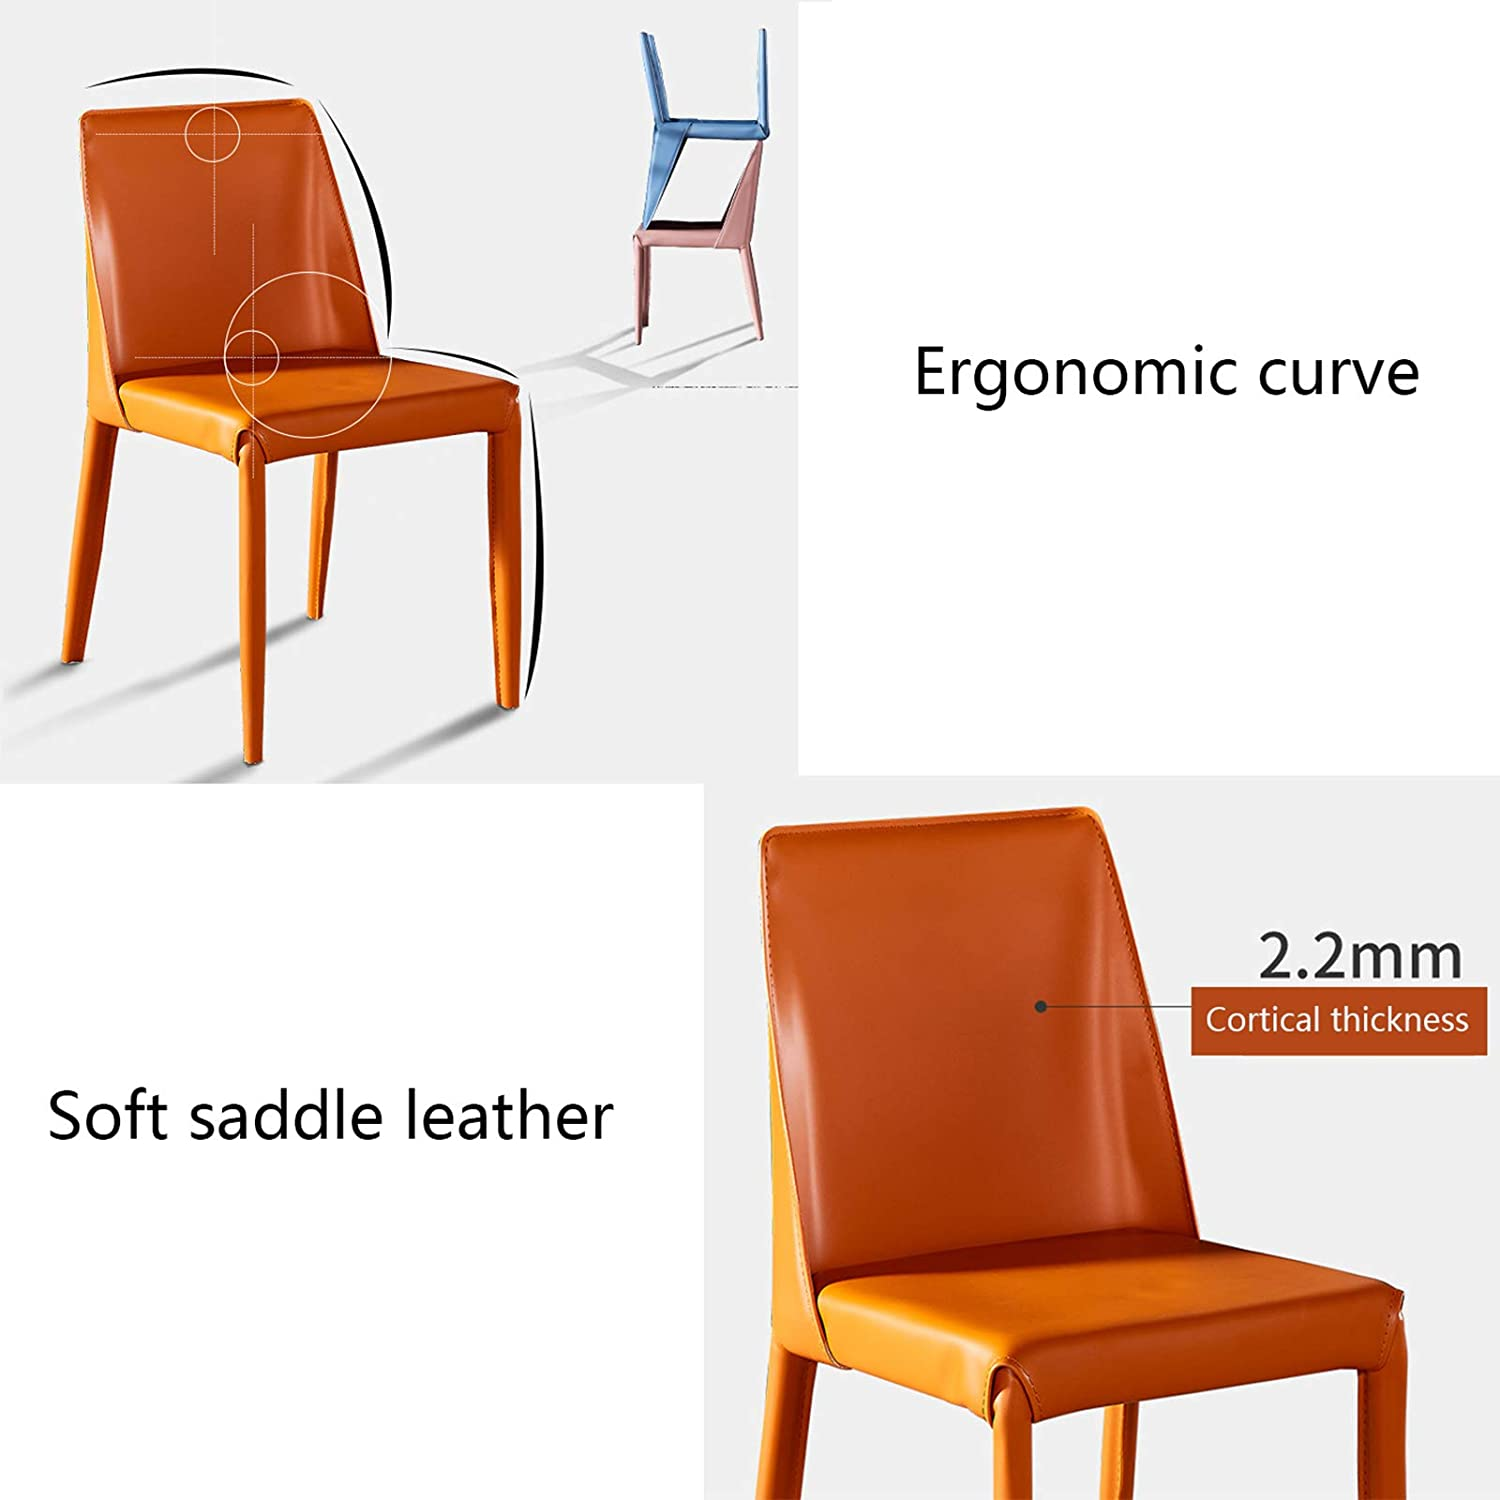 Nordic Light Dining Chair Saddle-Shaped Leather Home Accent Chair Modern Simple &Stylish Leisure Chair Makeup Vanity Chair Perfect for Home/Office/Restaurant,Black Blue